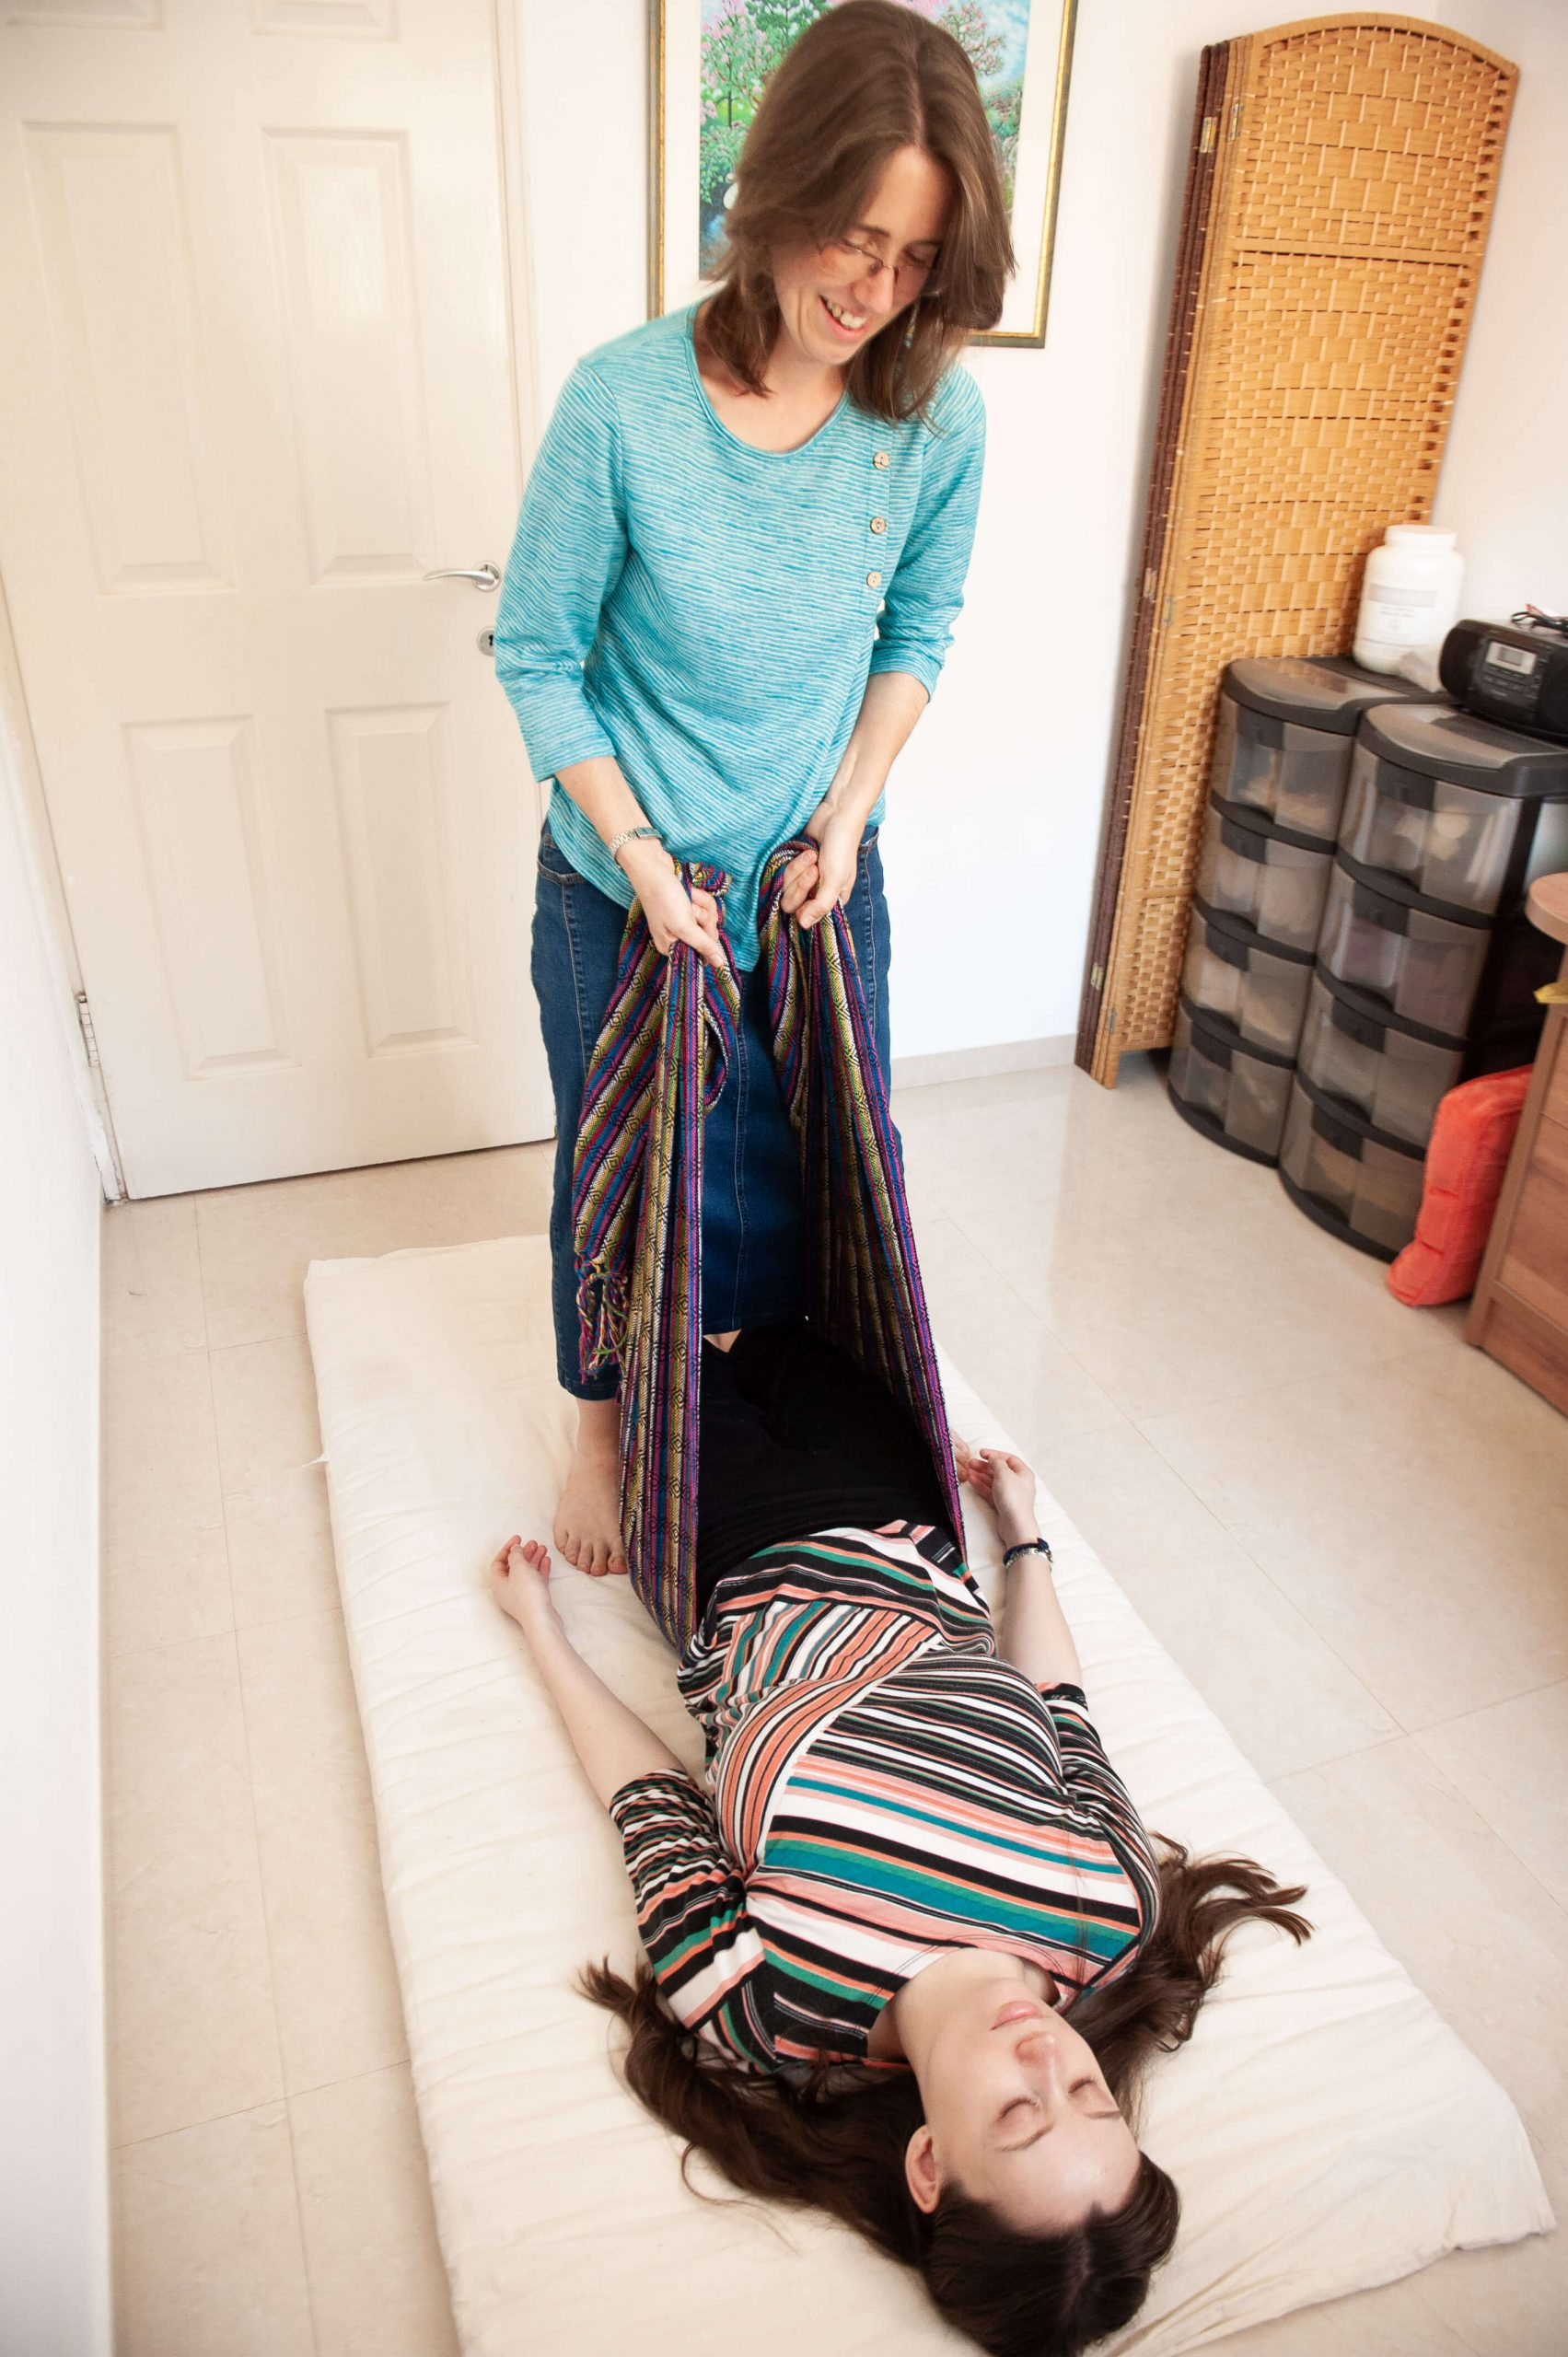 rebozo healing session